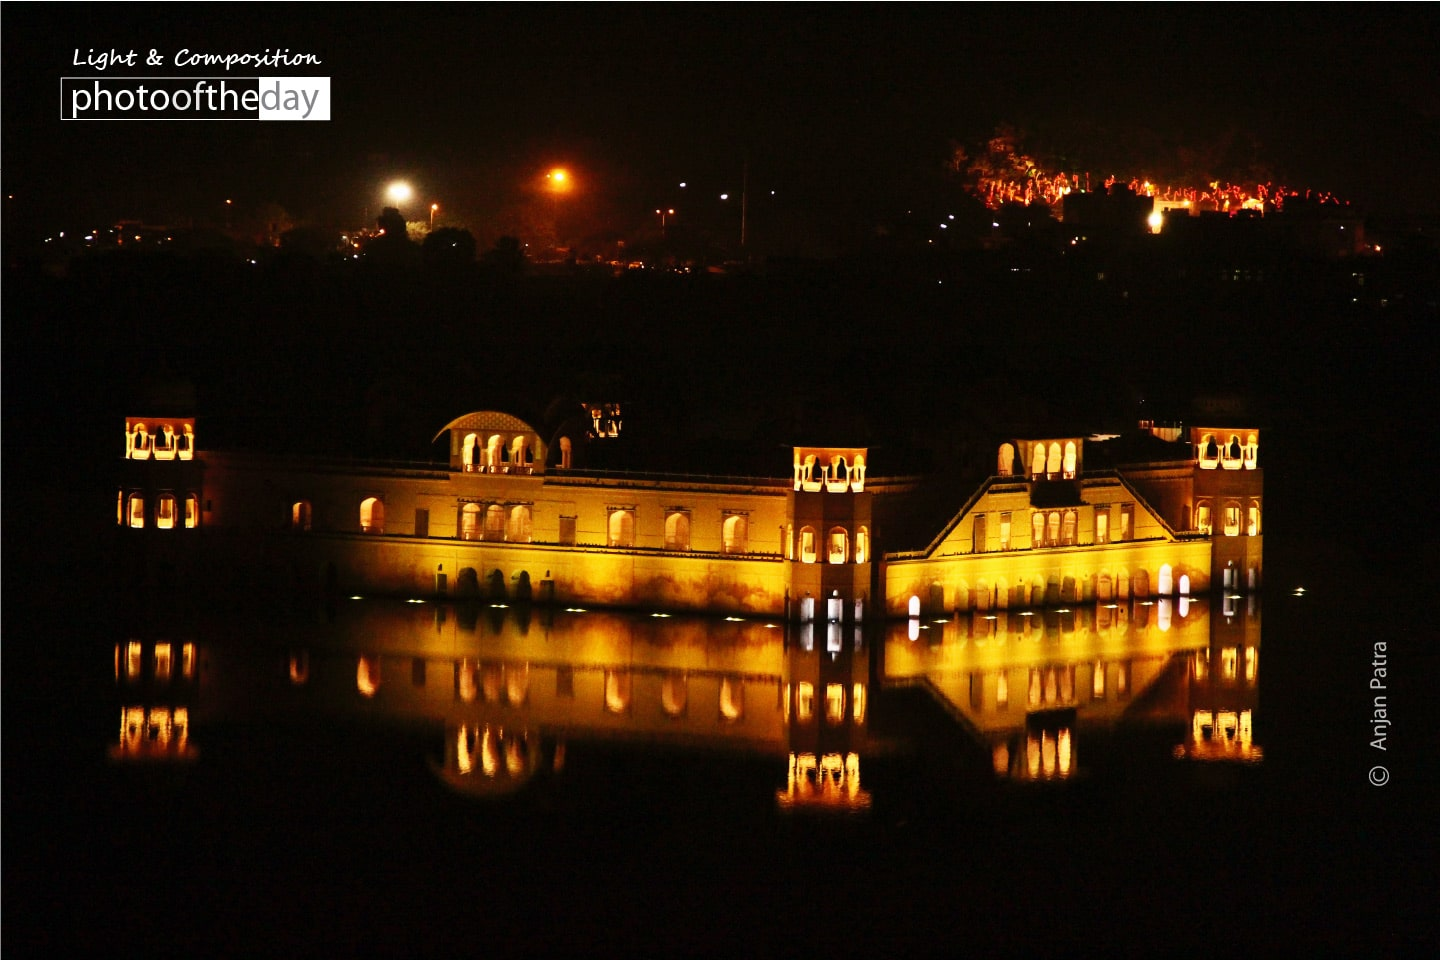 A Night View of Water Palace, by Anjan Patra